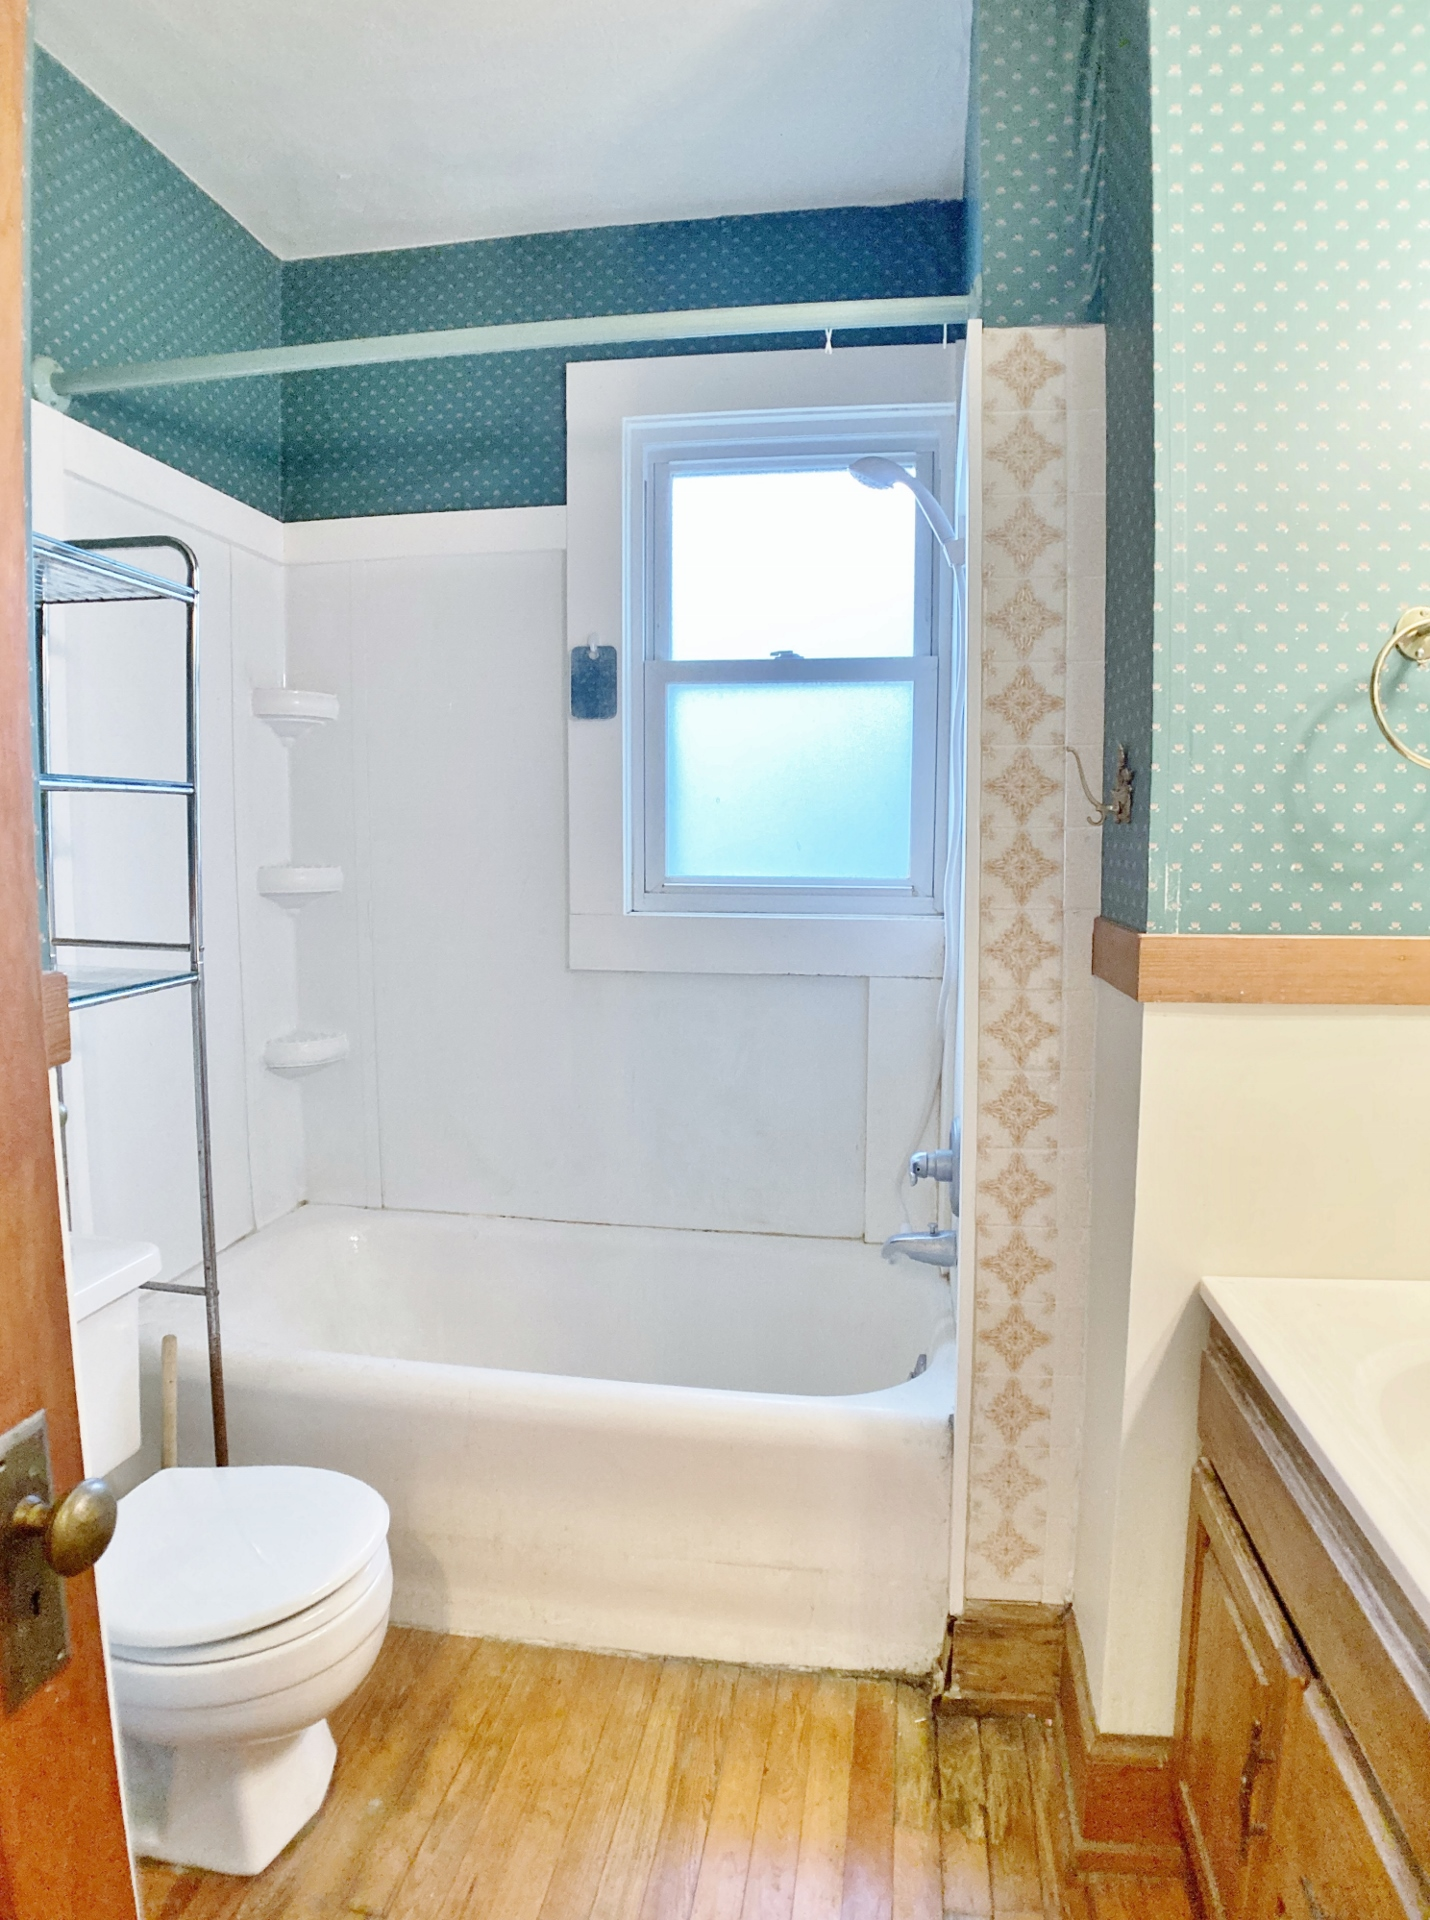 927 W. Beaver Avenue Full Bathroom #1